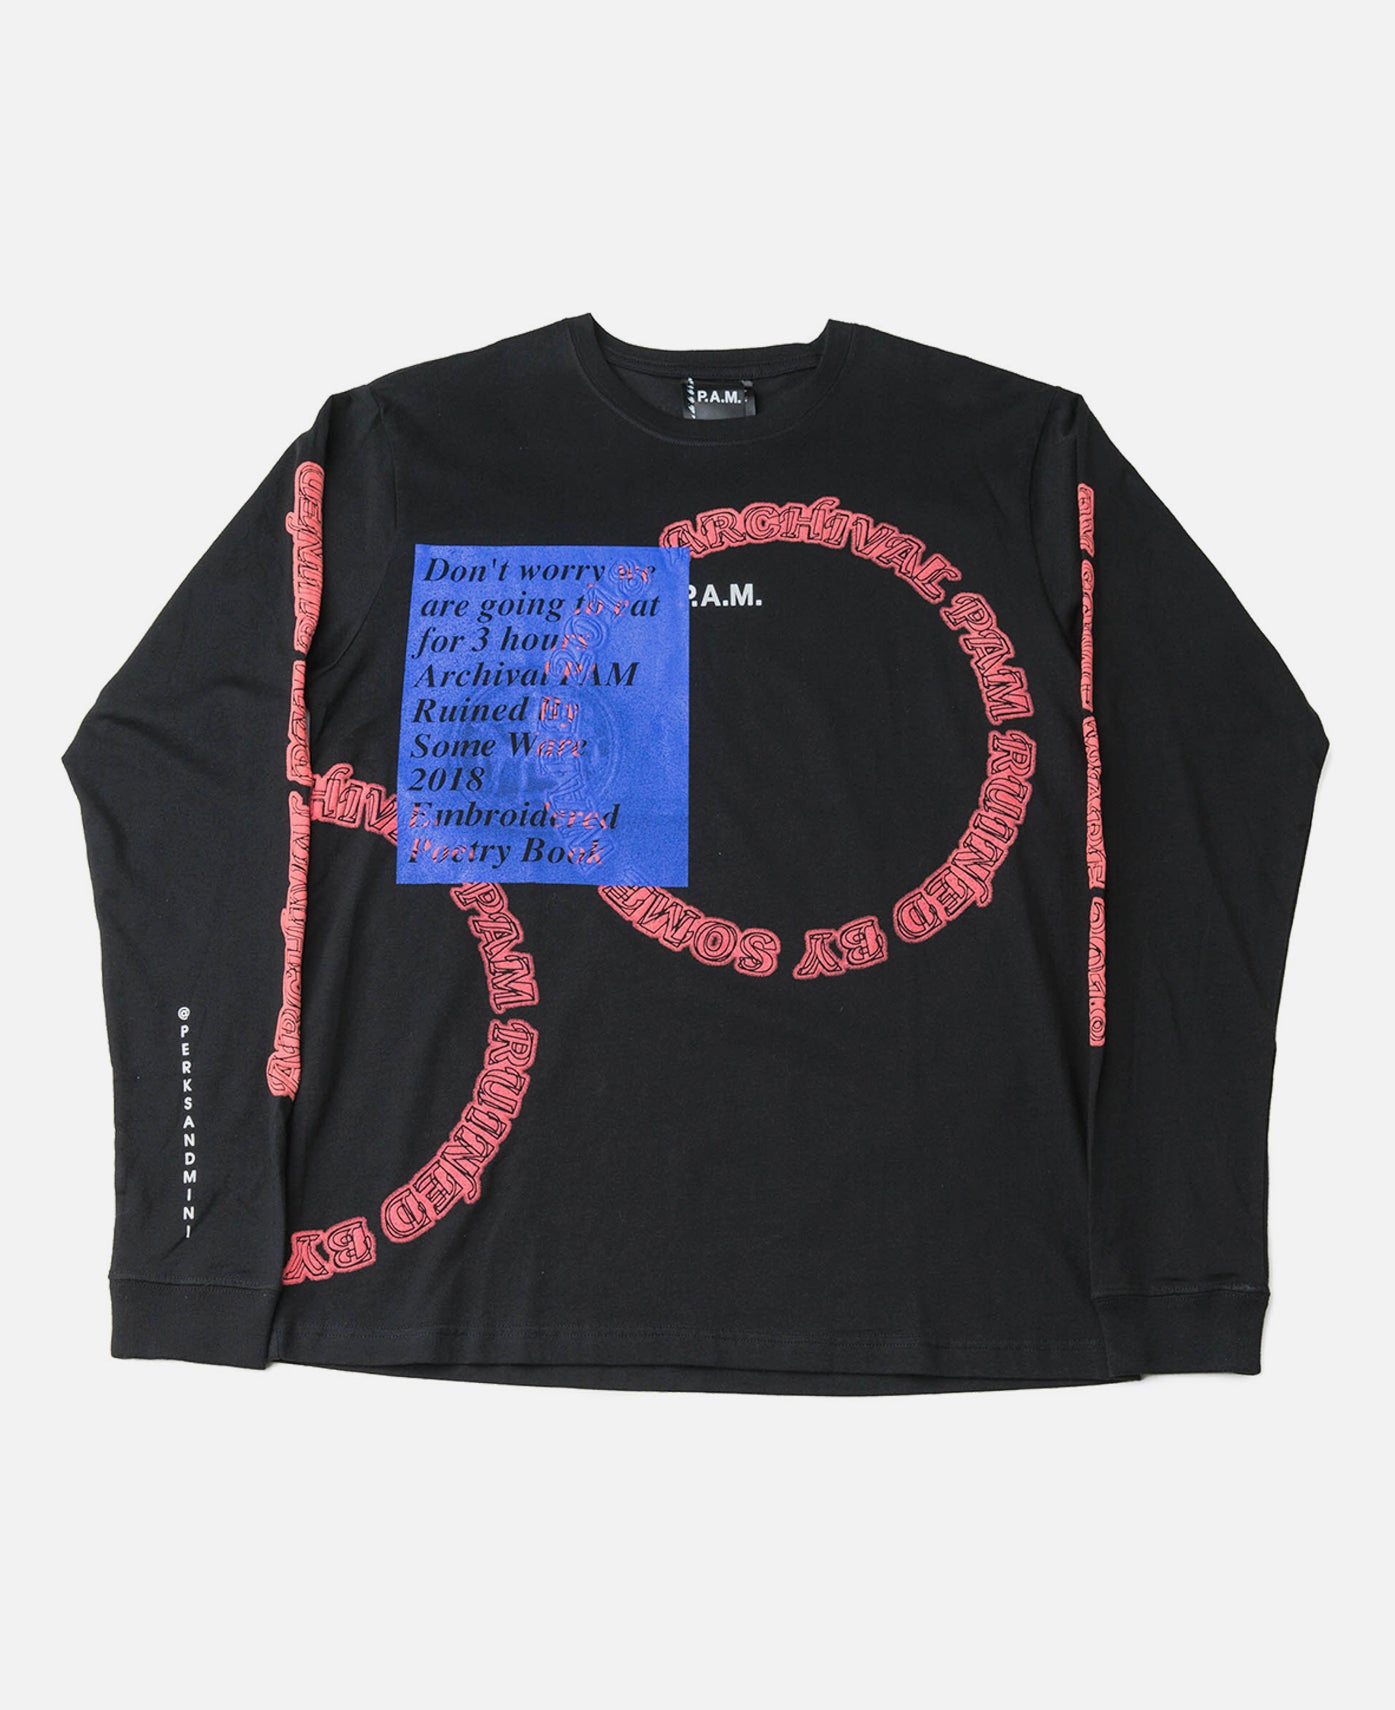 Some Ware x P.A.M. Logo L/S Tee